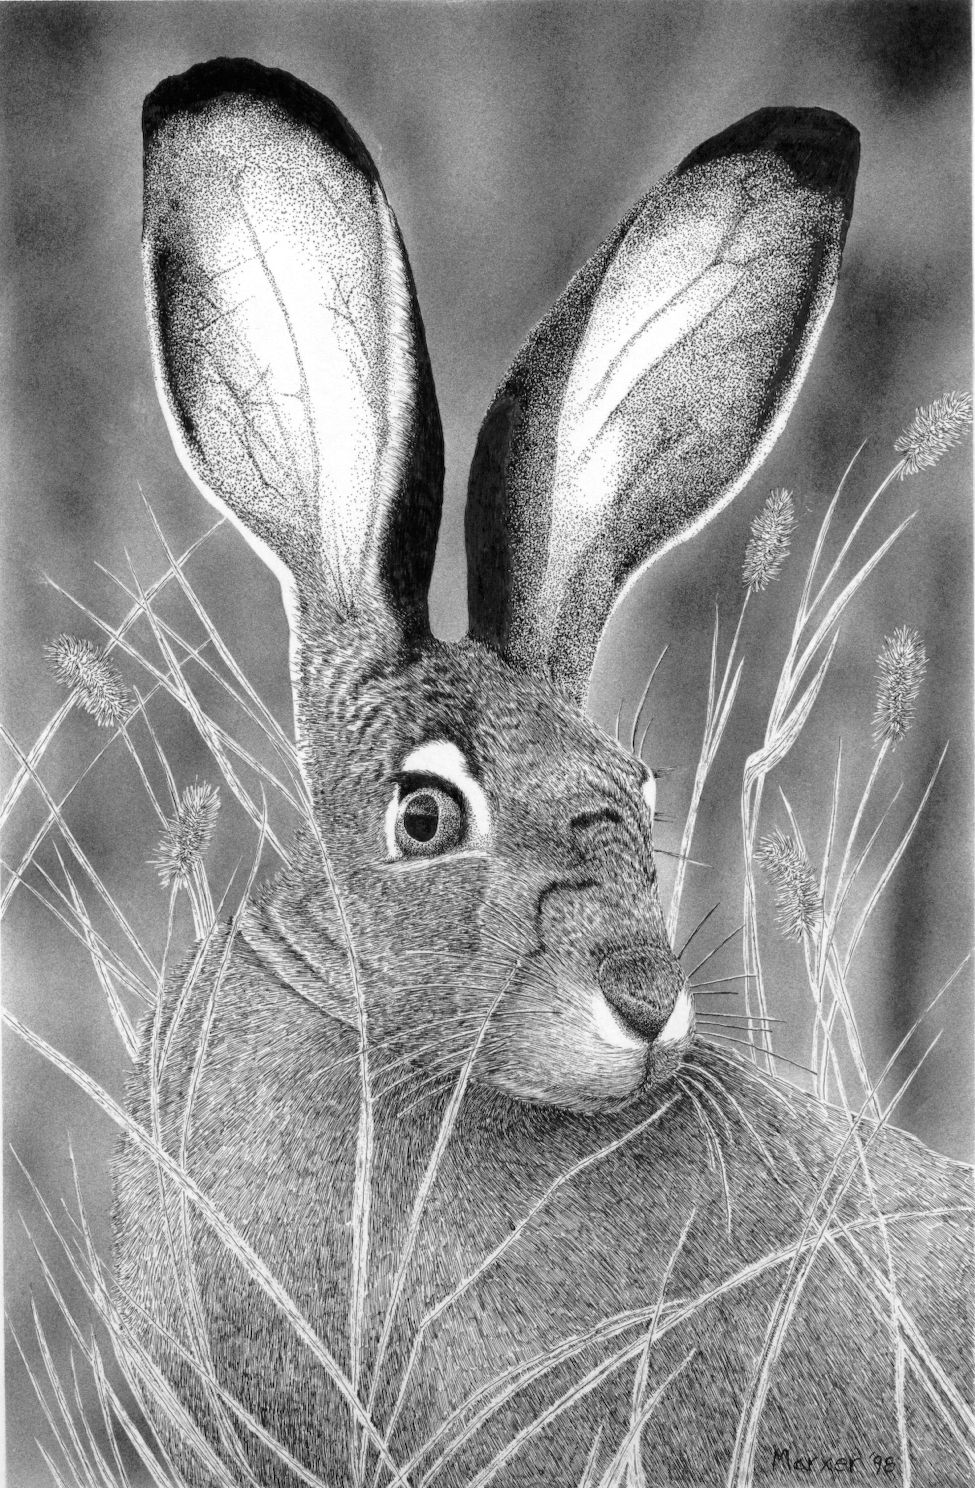 Jack Rabbit - Pen & India Ink  with Airbrushed background  1998 - by David Marxer